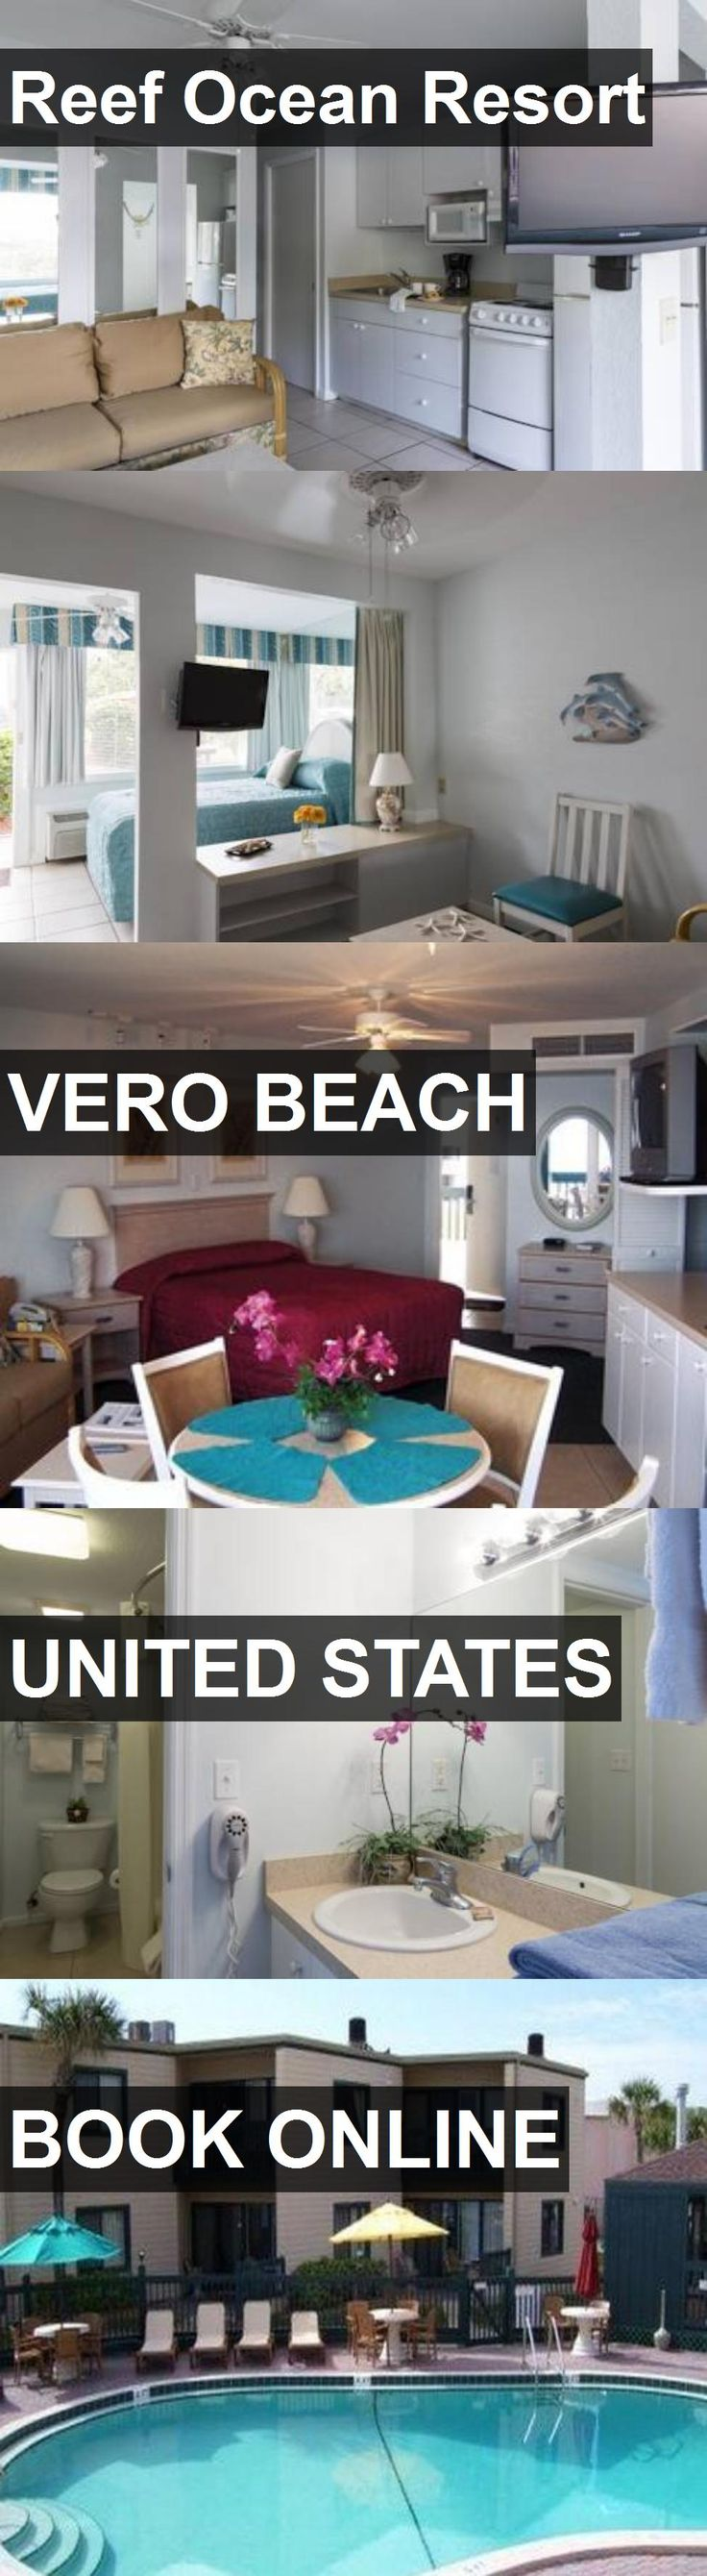 Hotel Reef Ocean Resort in Vero Beach, United States. For more information, photos, reviews and best prices please follow the link. #UnitedStates #VeroBeach #travel #vacation #hotel